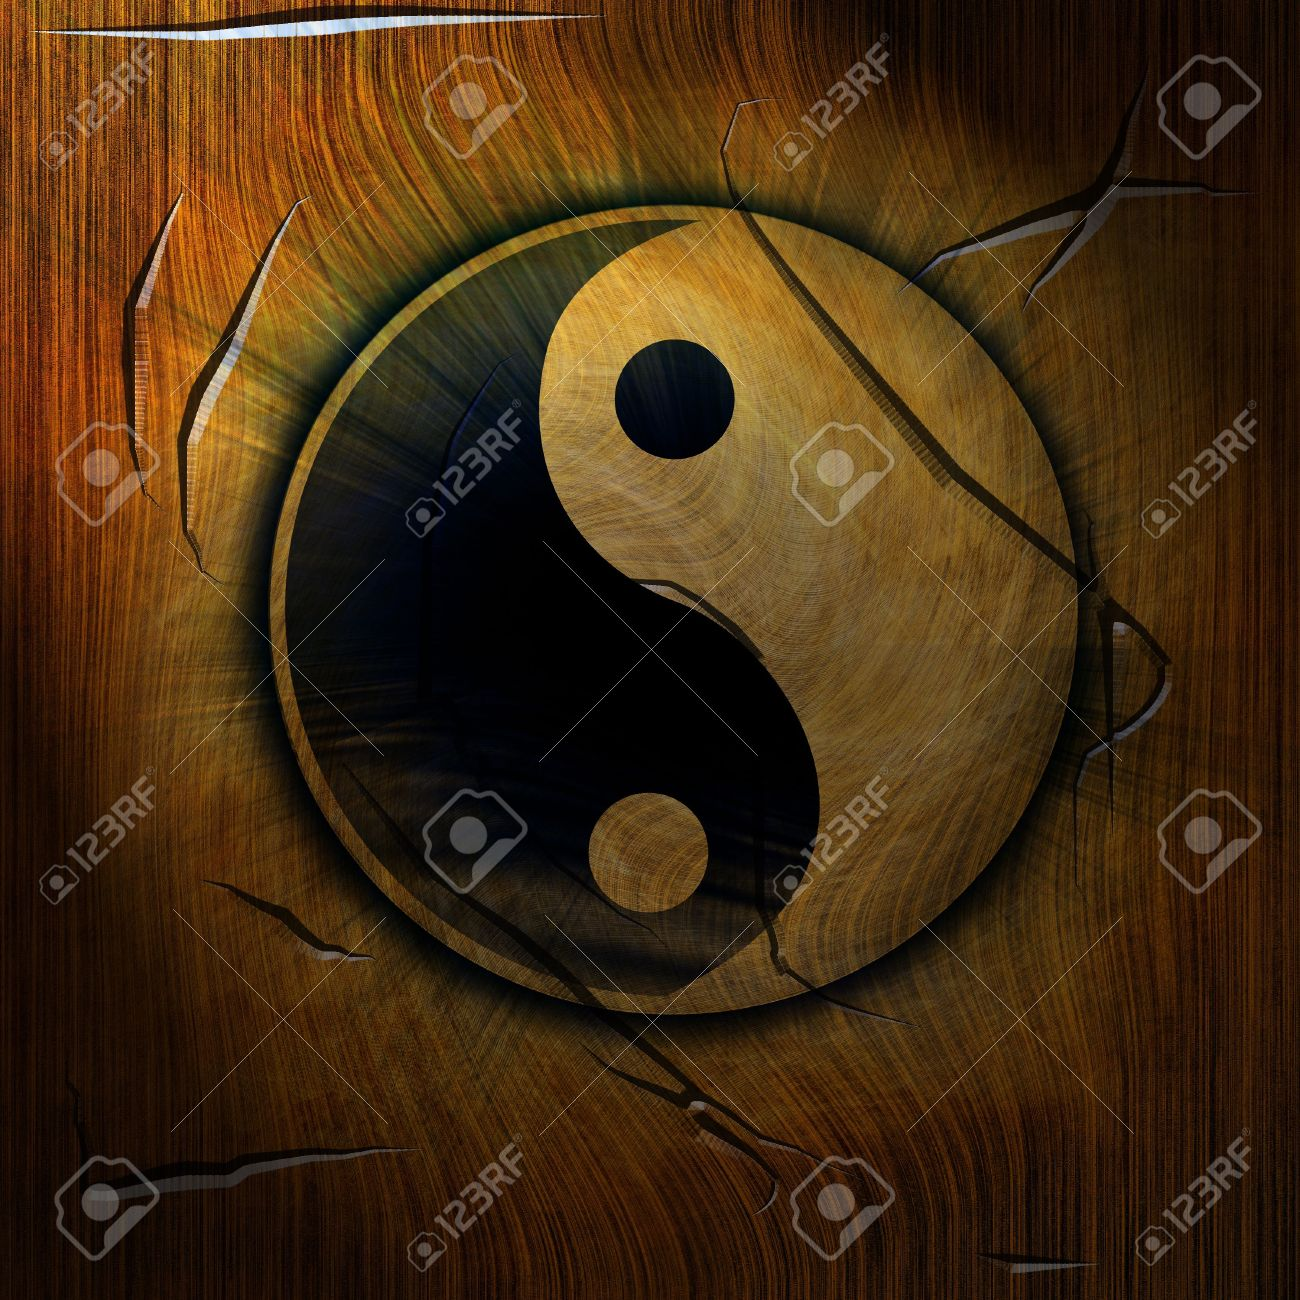 yin yang symbol on a wooden background Stock Photo - 3689038